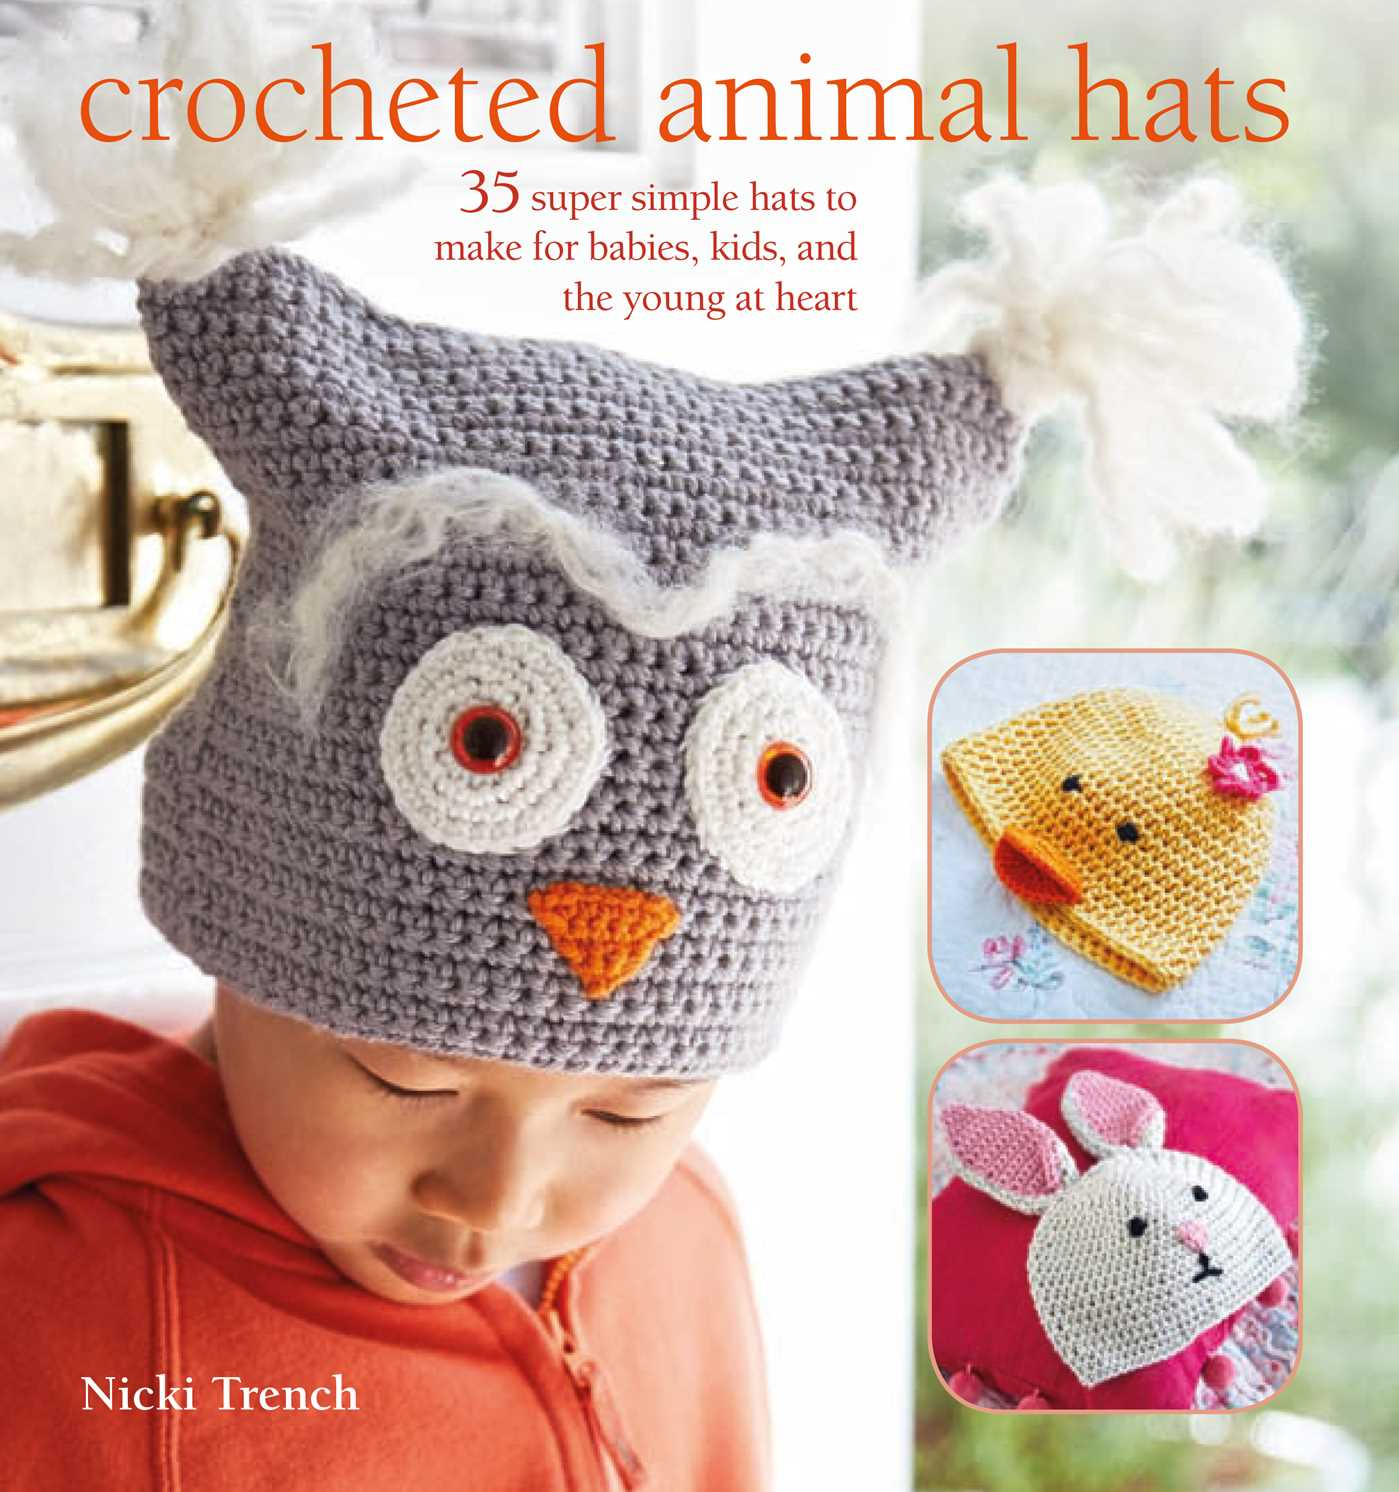 Book Cover Crochet Hats : Crocheted animal hats book by nicki trench official